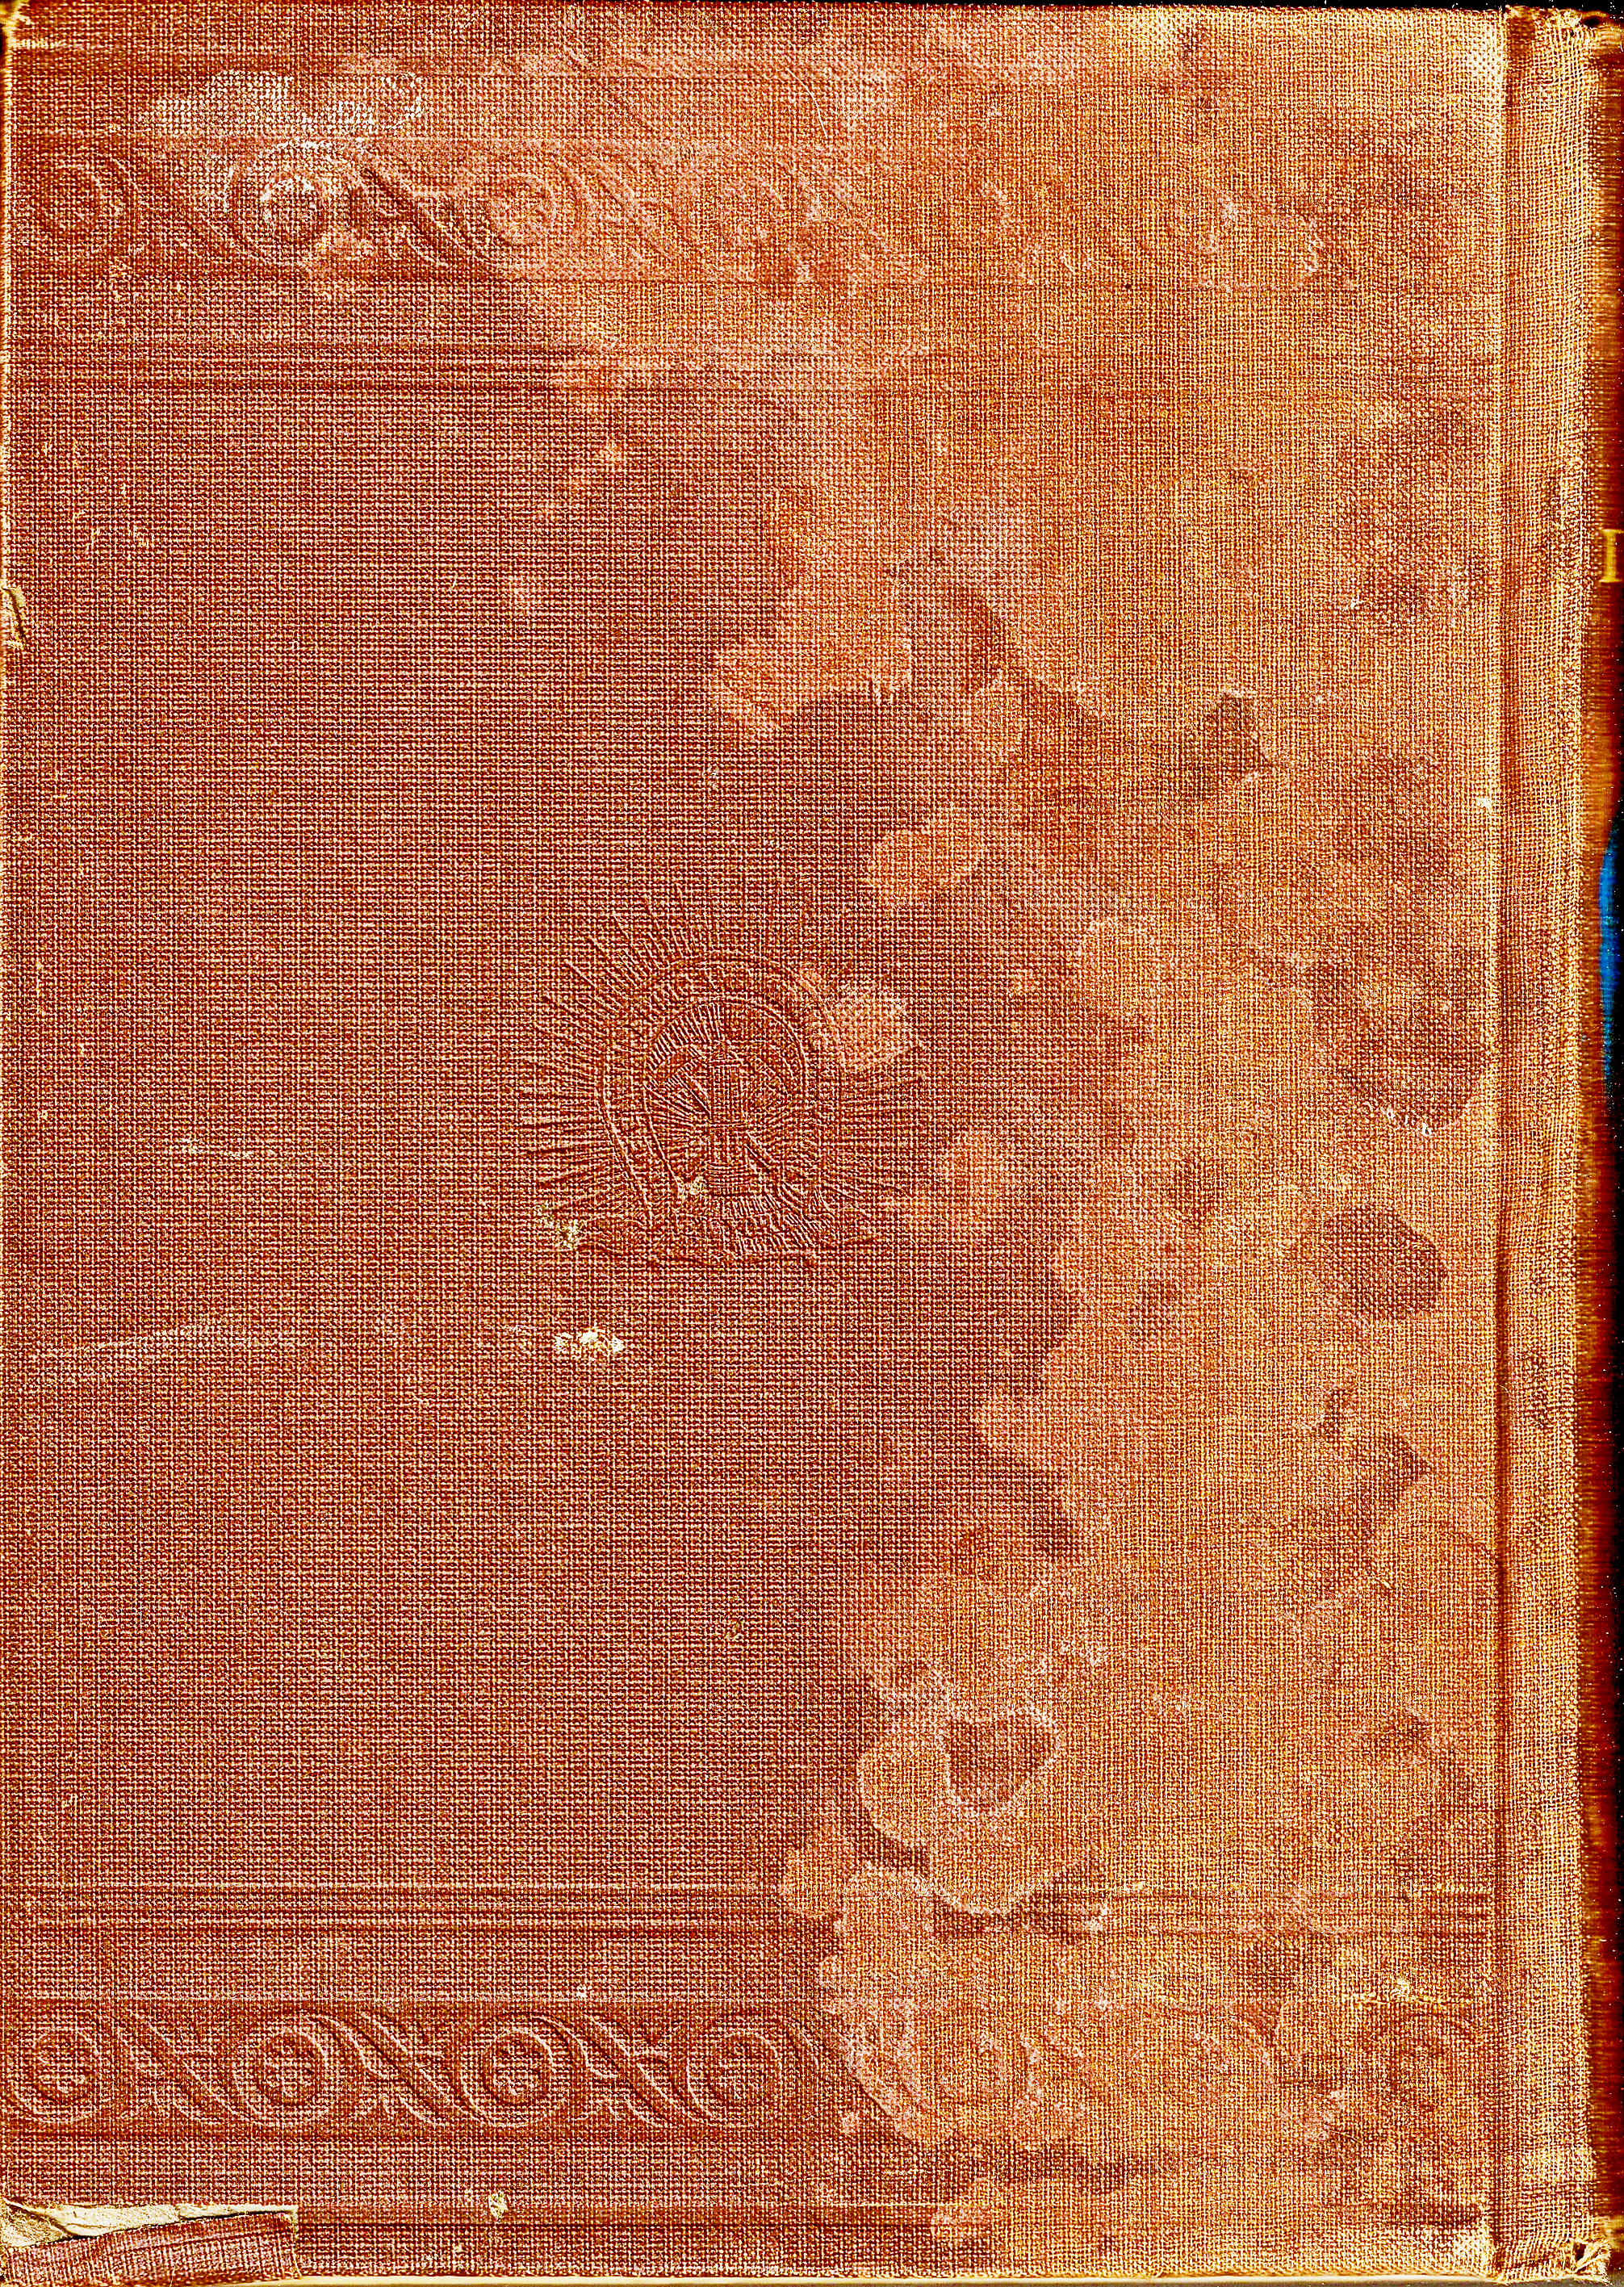 Bobook clipart back cover Book Background  Waterstained Waterstained